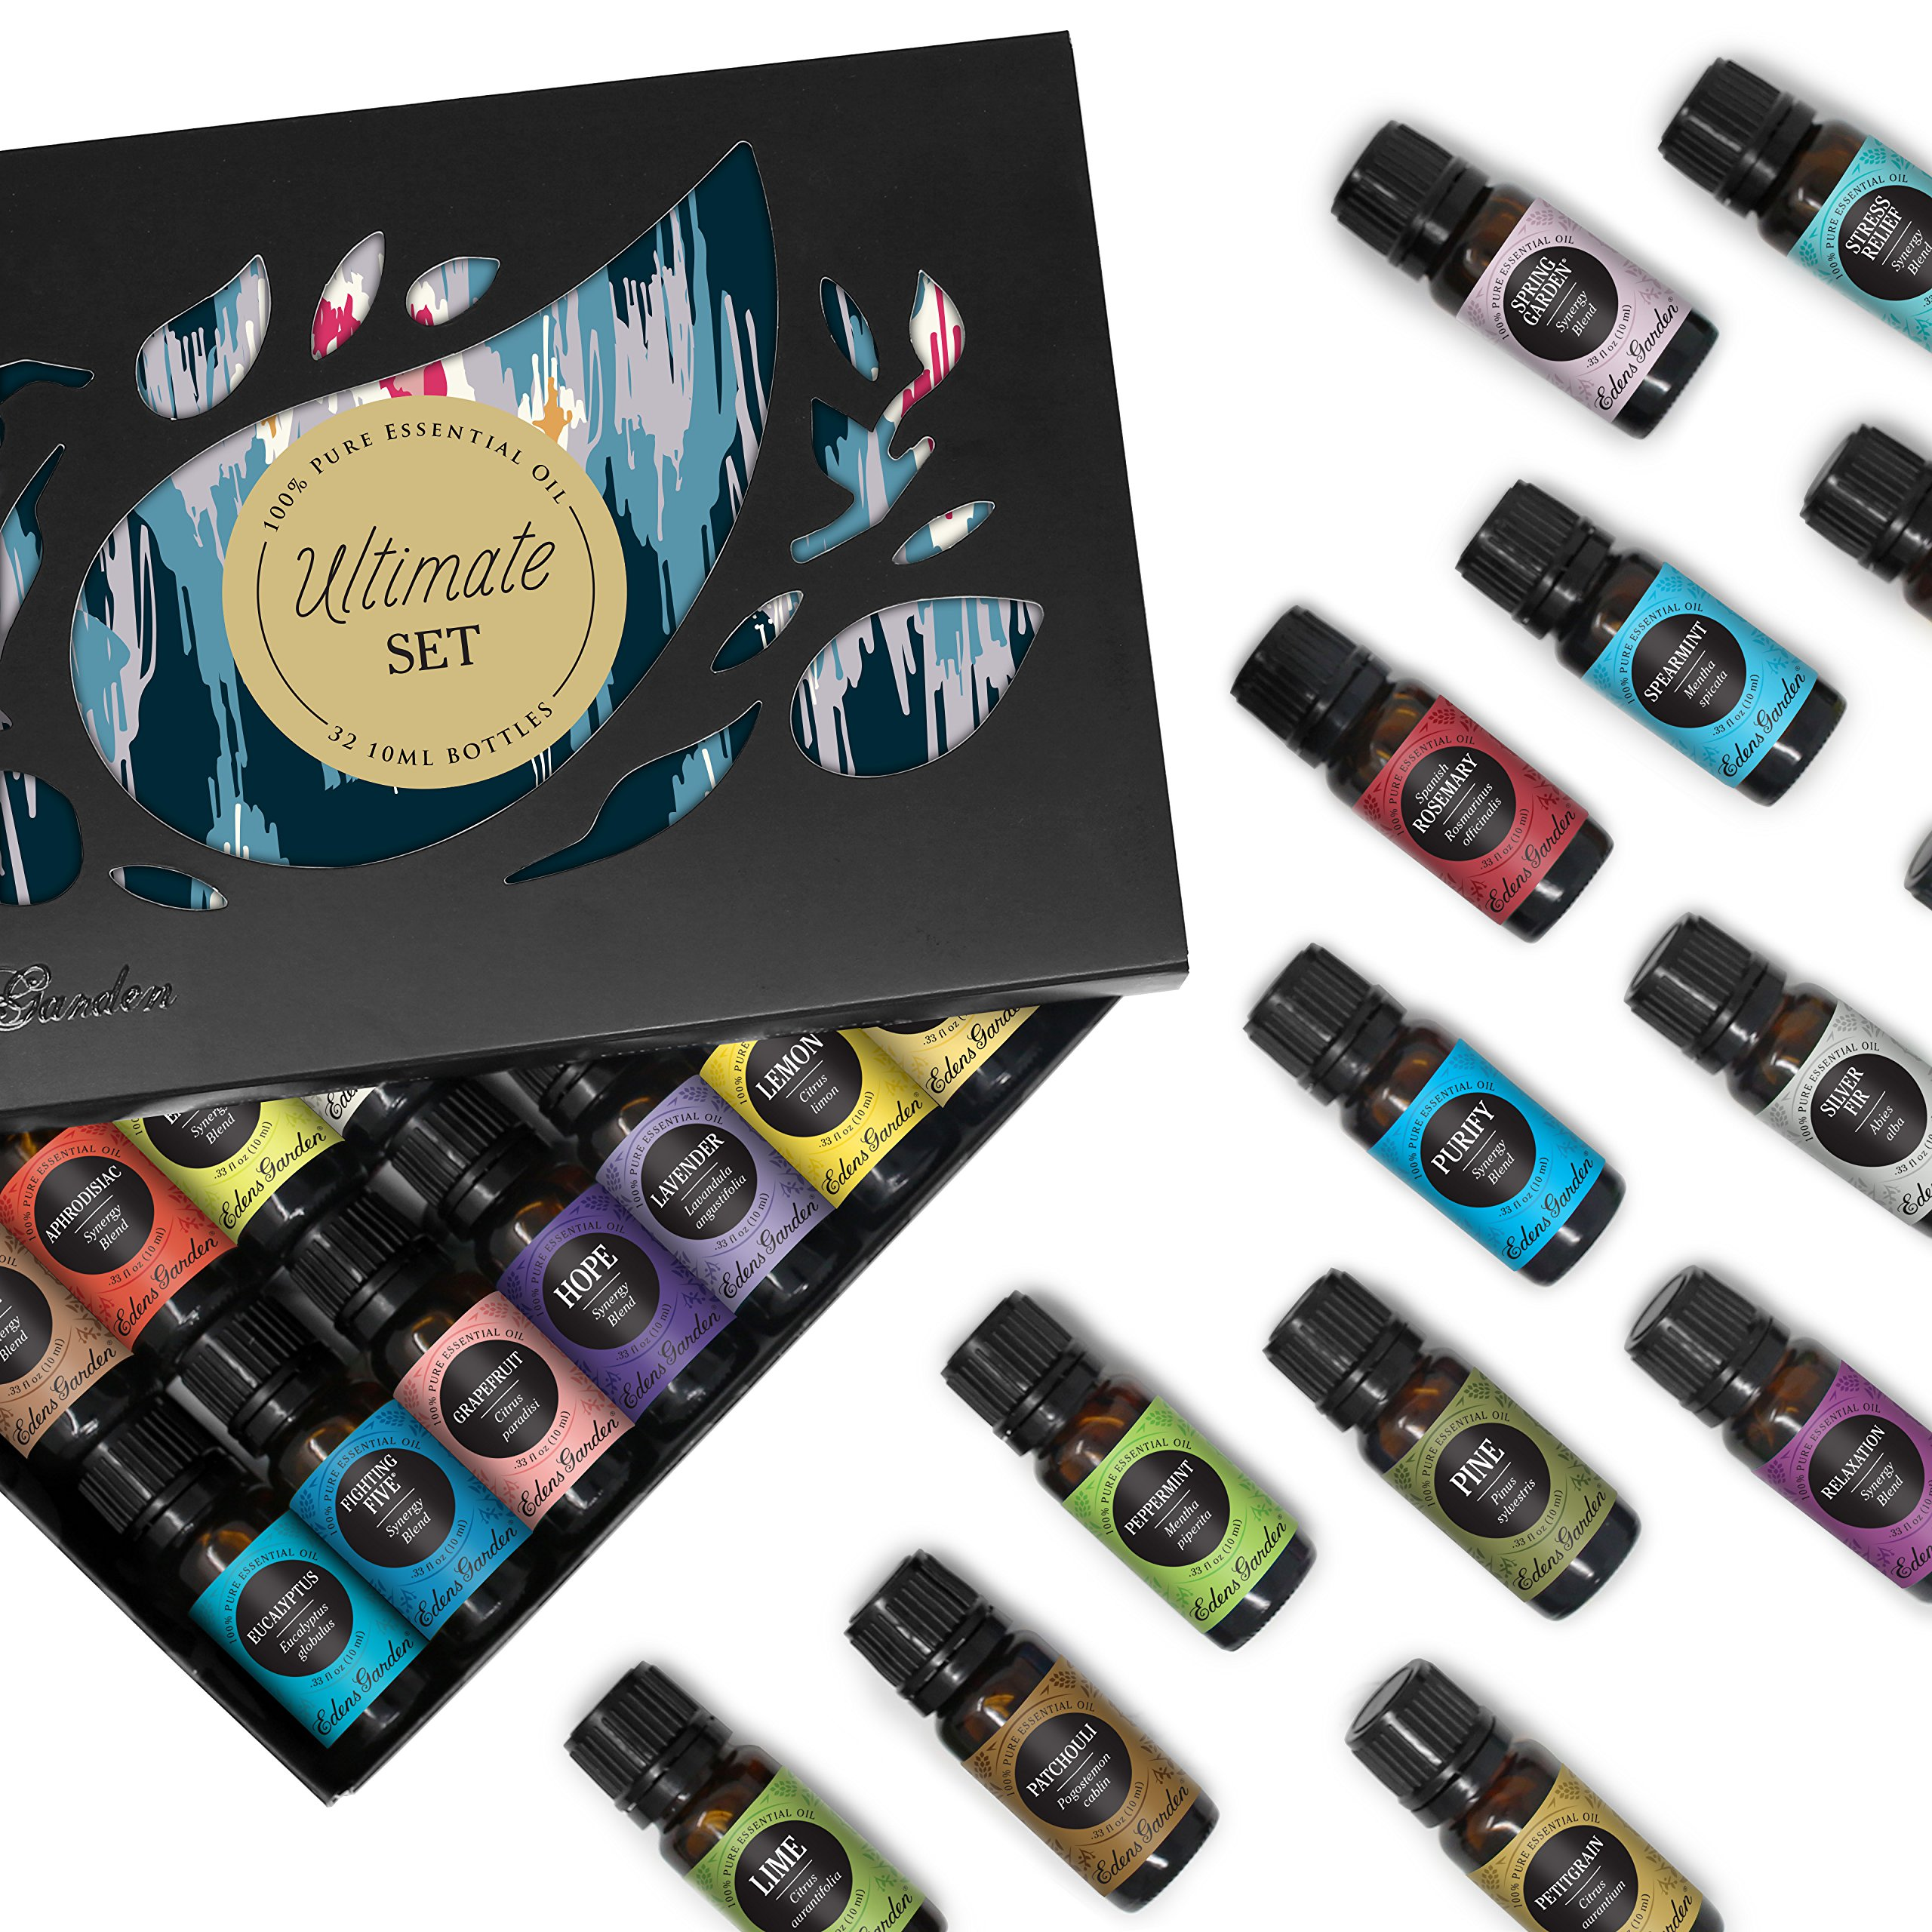 Edens Garden Ultimate Essential Oil Set, Best 100% Pure Aromatherapy Starter Kit (For Diffuser & Therapeutic Use), 10 ml